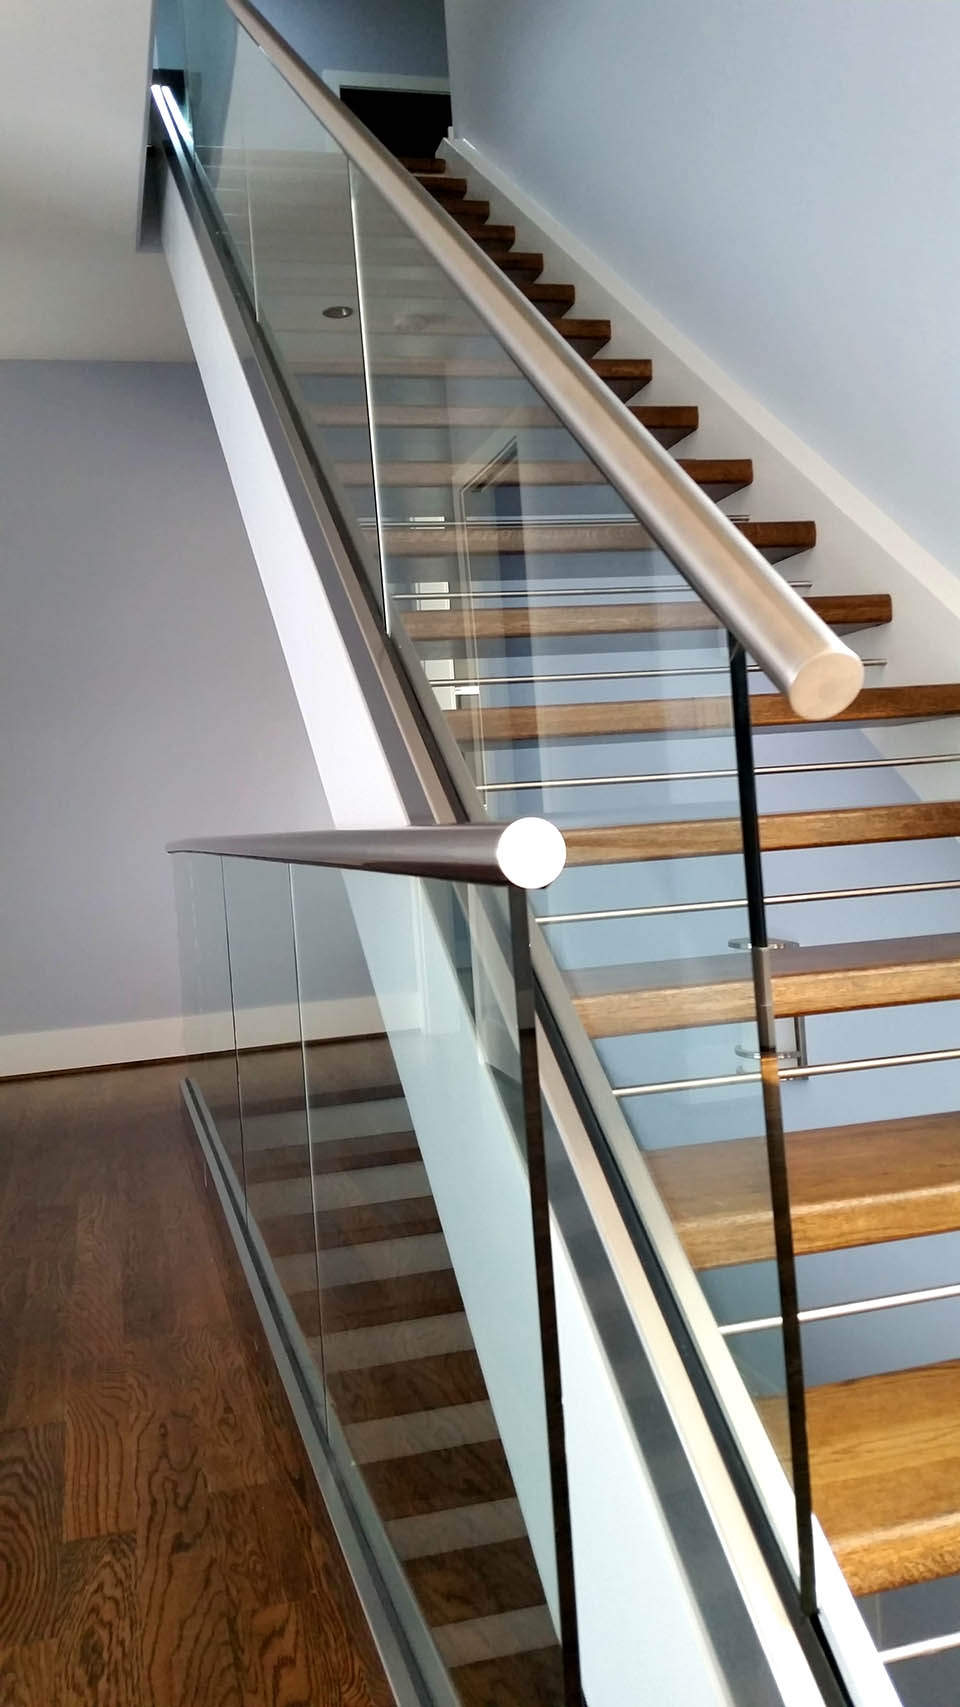 Glass Staircase Southern Staircase Artistic Stairs   Modern Metal Stair Railing   Interesting   Horizontal Slat   Curved Metal   Low Cost   Before And After